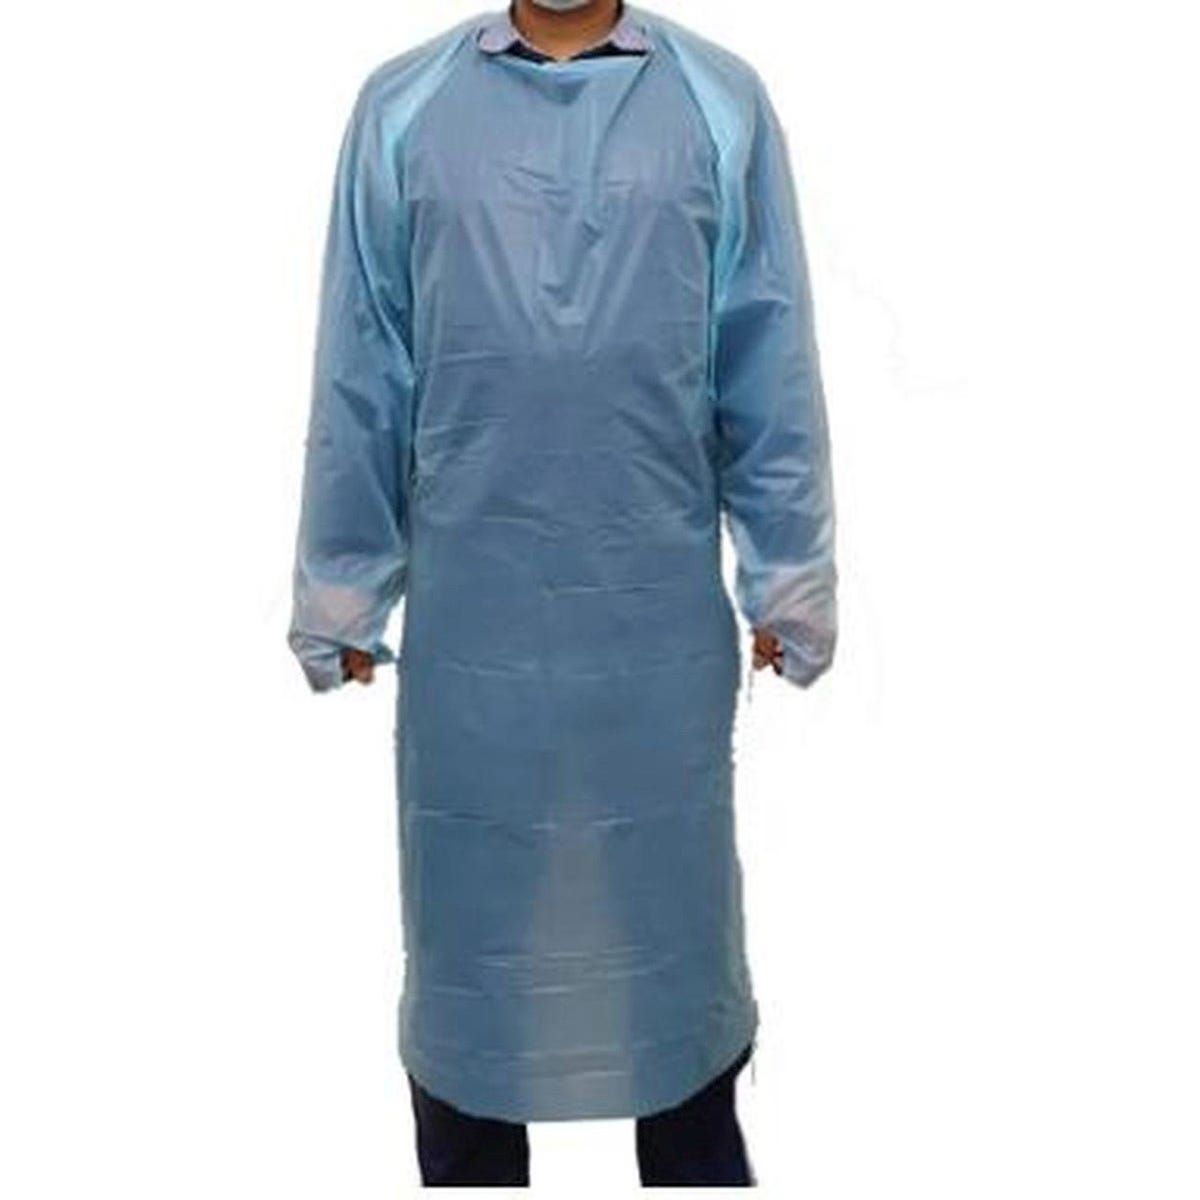 Level 1 Disposable Gown 50/Bx